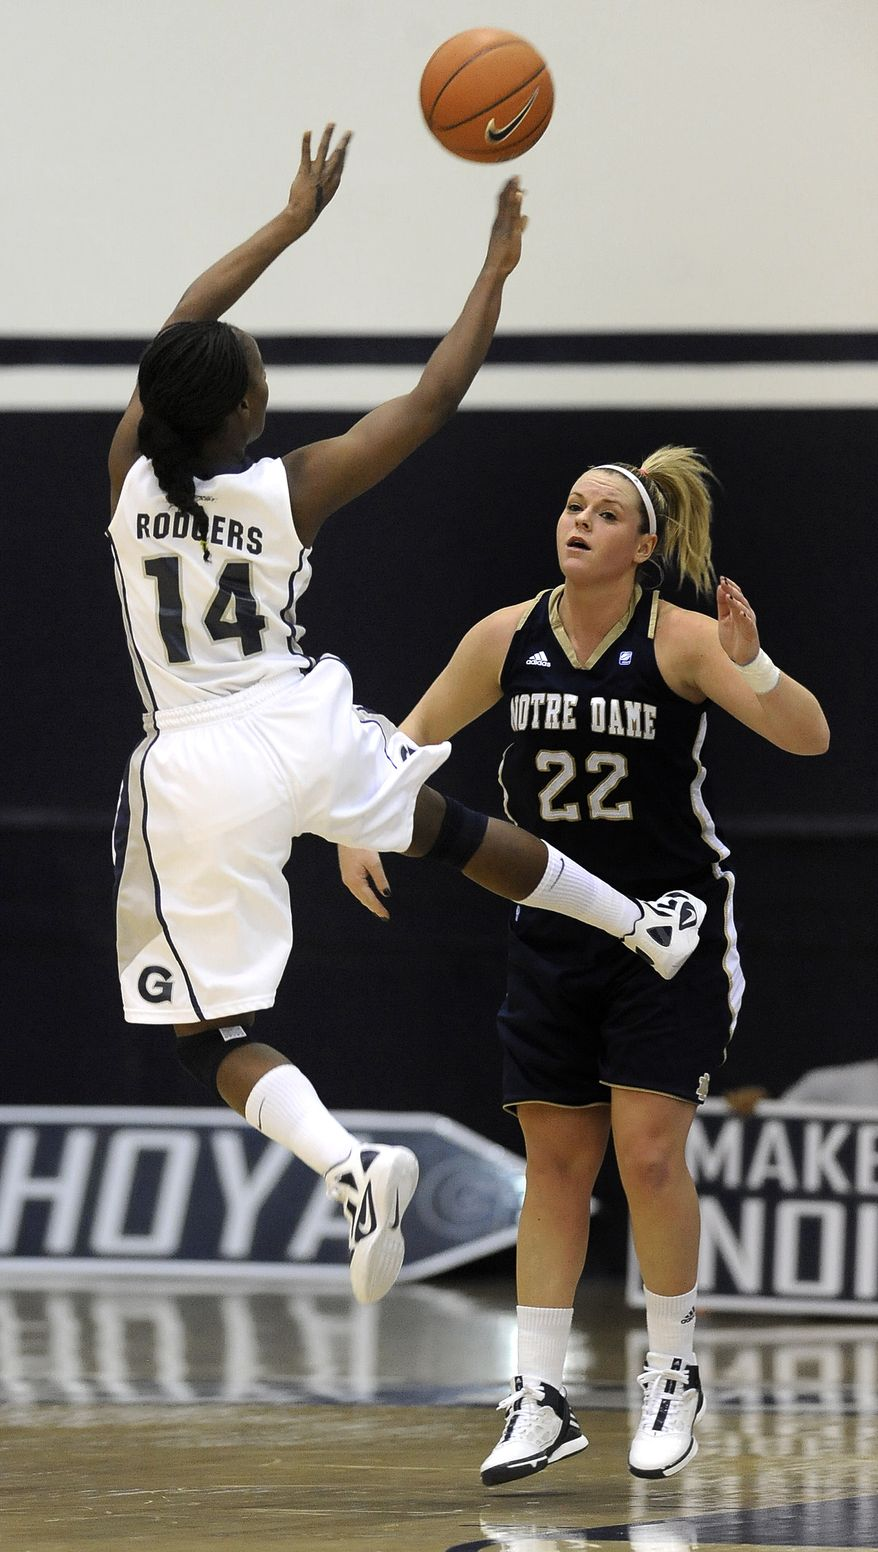 Georgetown's Sugar Rodgers goes up for a shot away from Notre Dame's Brittany Mallory (22) during second half of an NCAA basketball game, Tuesday, Jan. 10, 2012, in Washington. Notre Dame defeated Georgetown 80-60. (AP Photo/Richard Lipski)